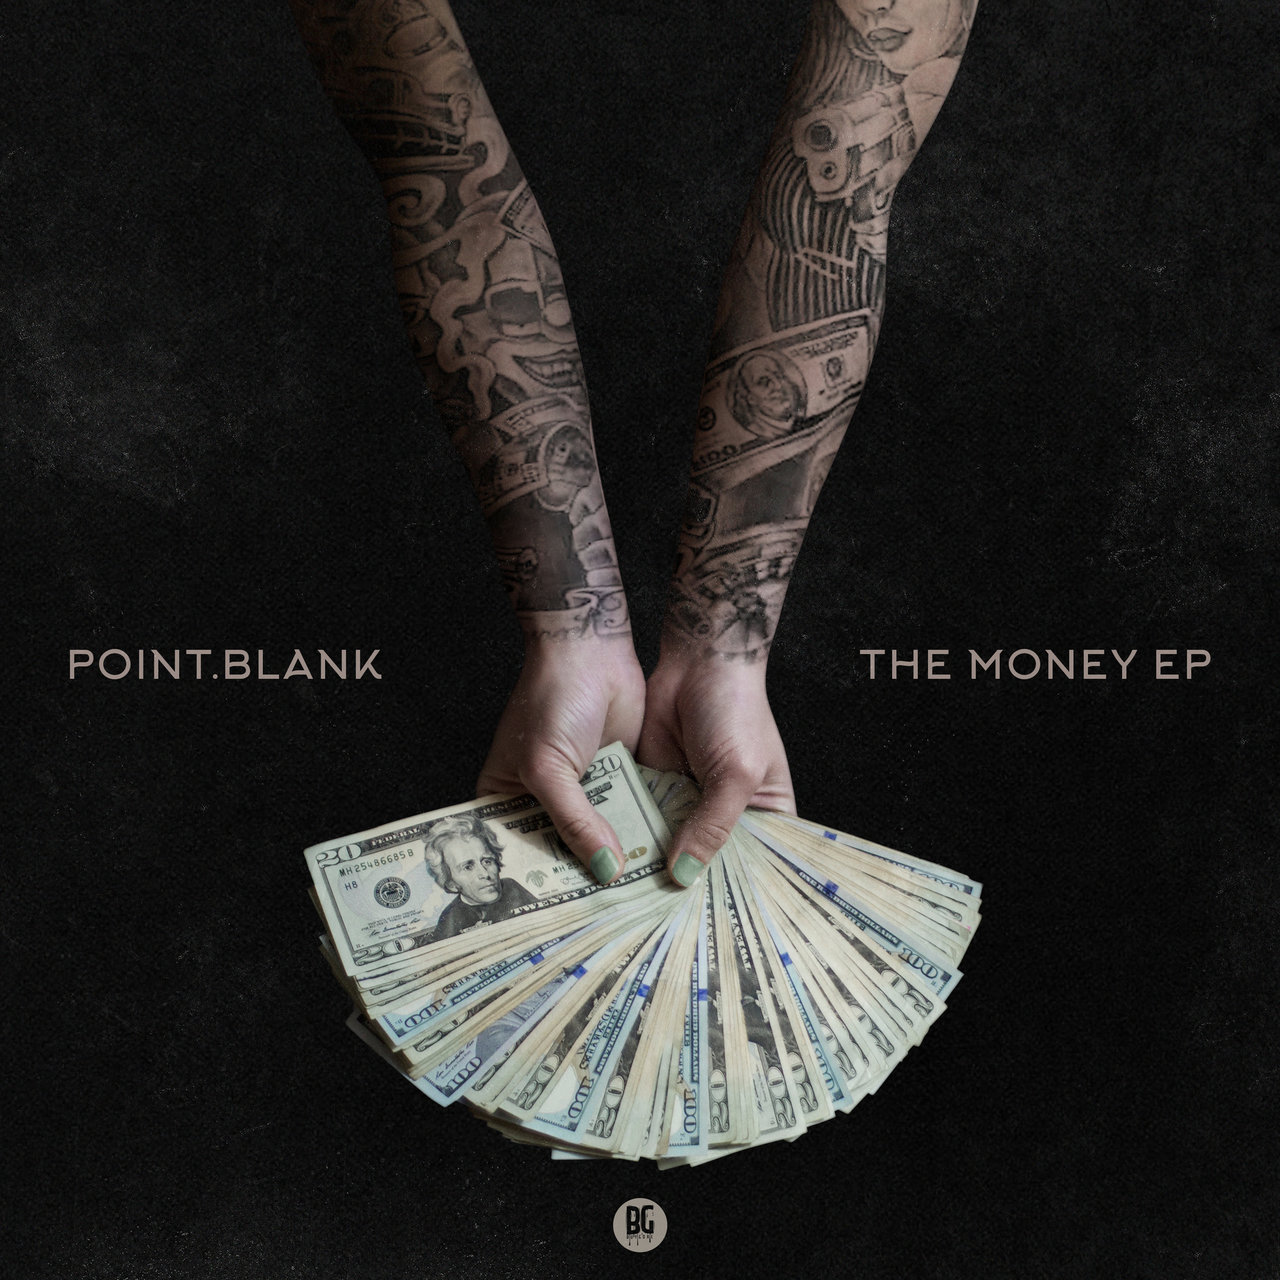 The Money EP